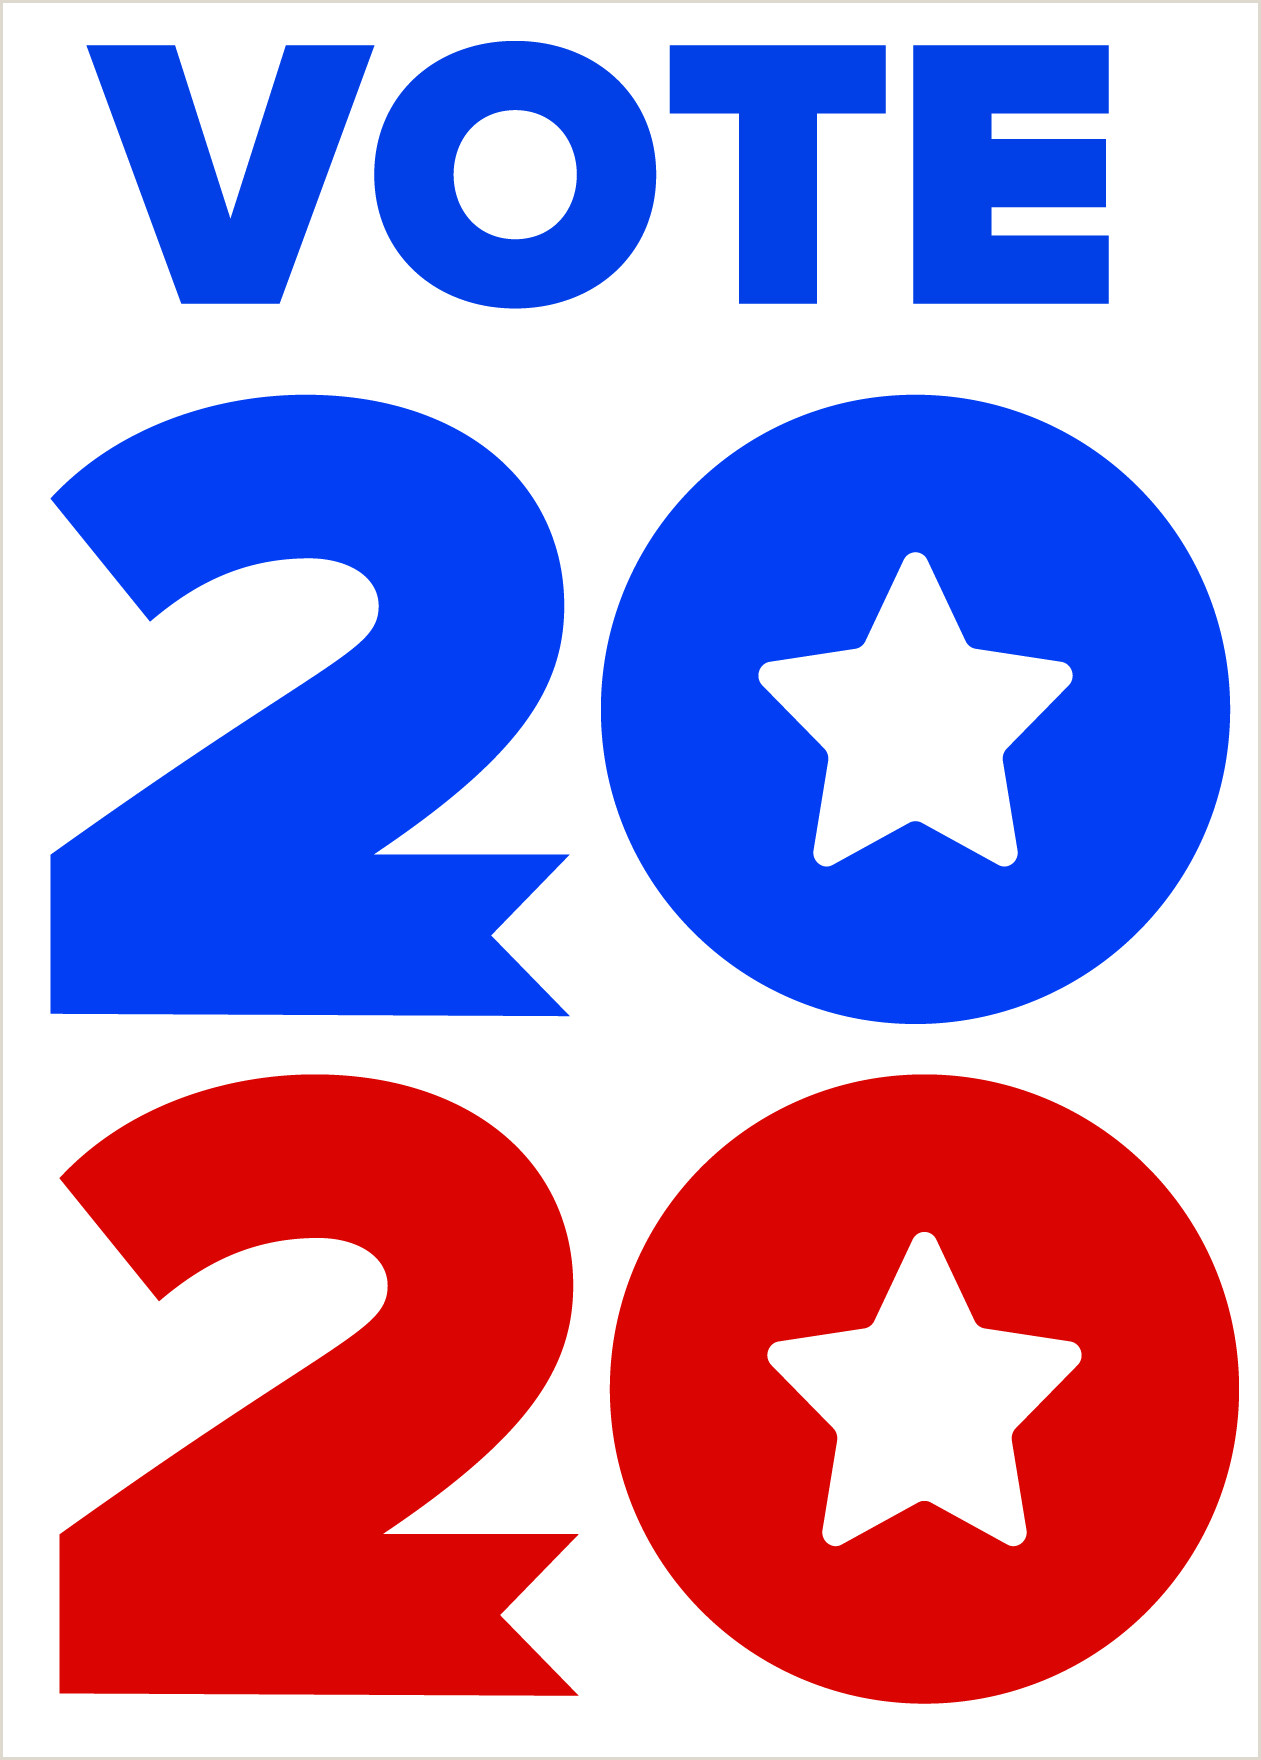 Best Business Cards Pinterst Election Day Snapshot • Chico News & Review